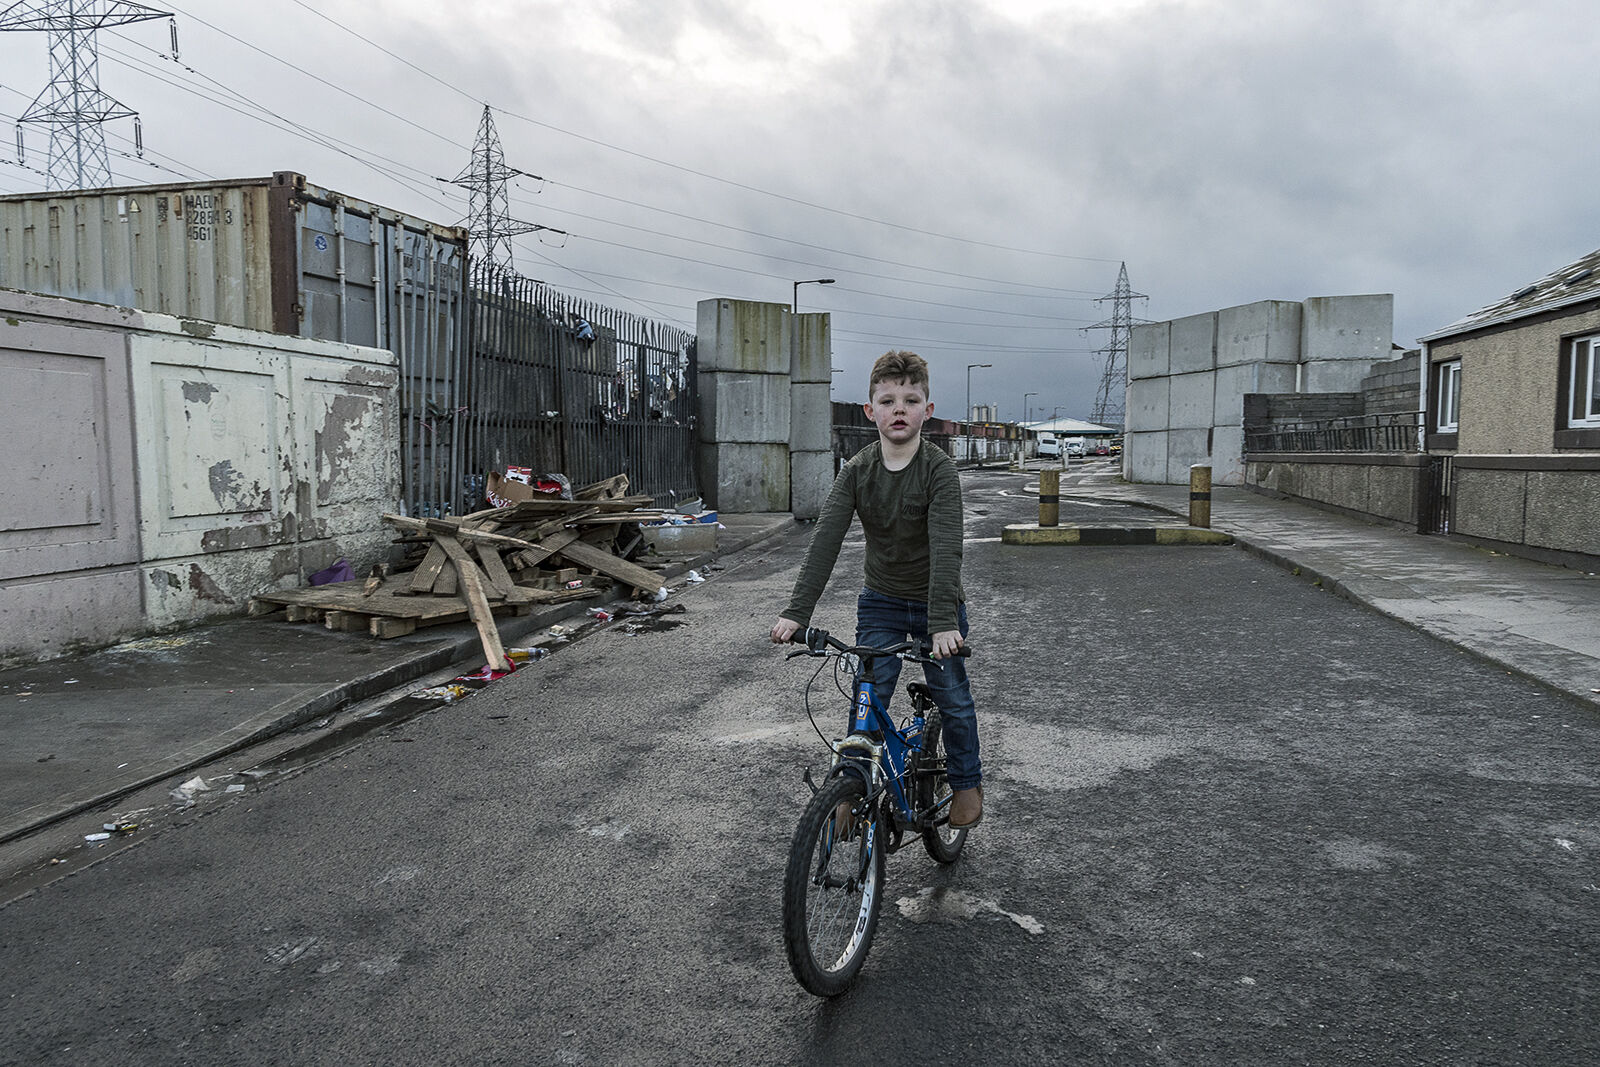 Micheal on Bicycle, Dublin, Ireland 2020